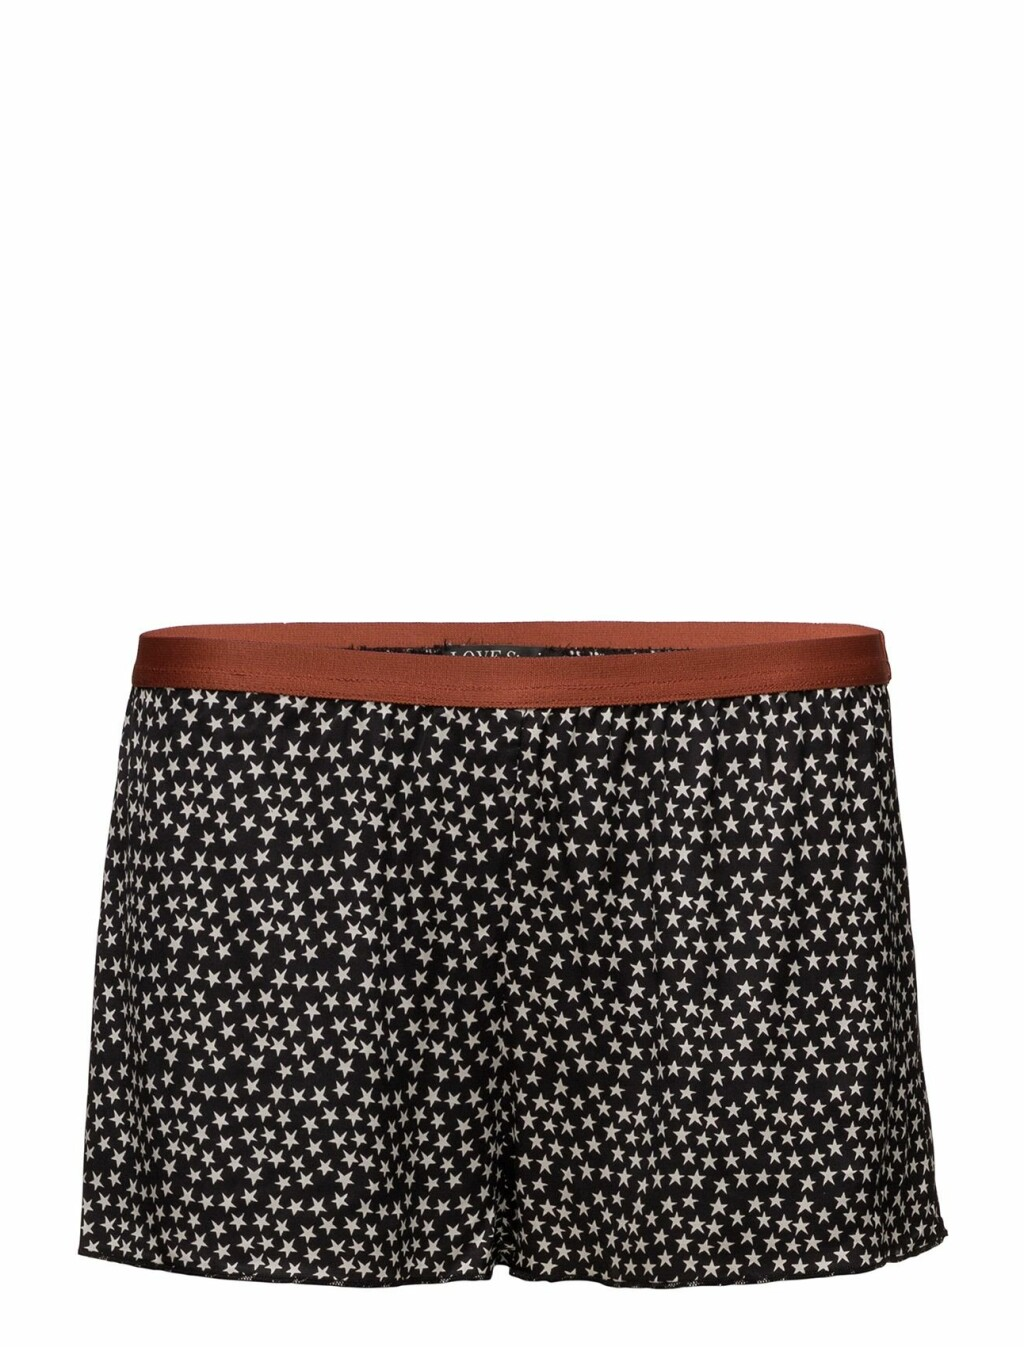 Shorts fra Love Stories |650,-